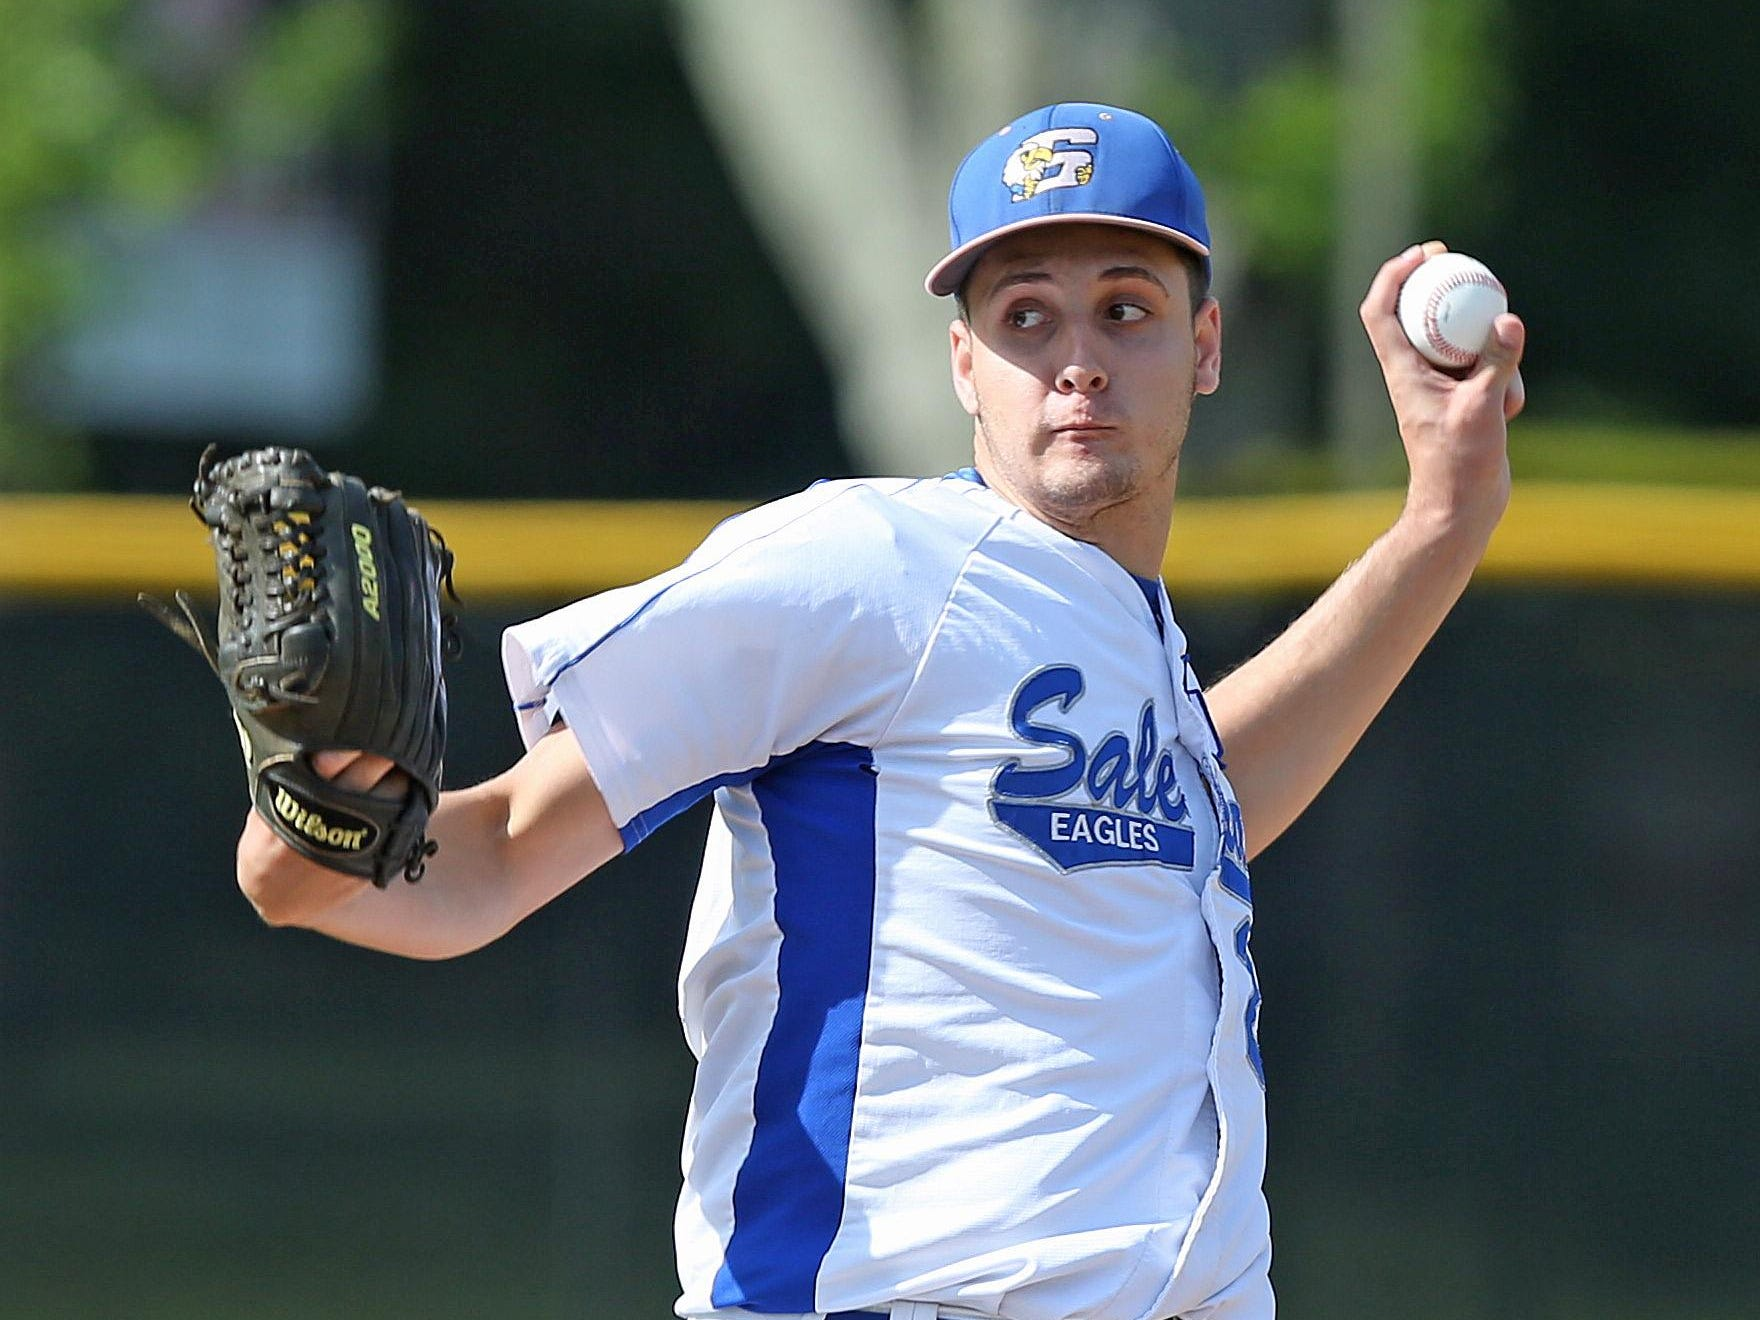 Salesian's Nicky Gennarelli pitching against Iona during the CHSAA baseball championship tournament at Manhattanville College in Purchase June 3, 2015. Salesian won the game 2-1.